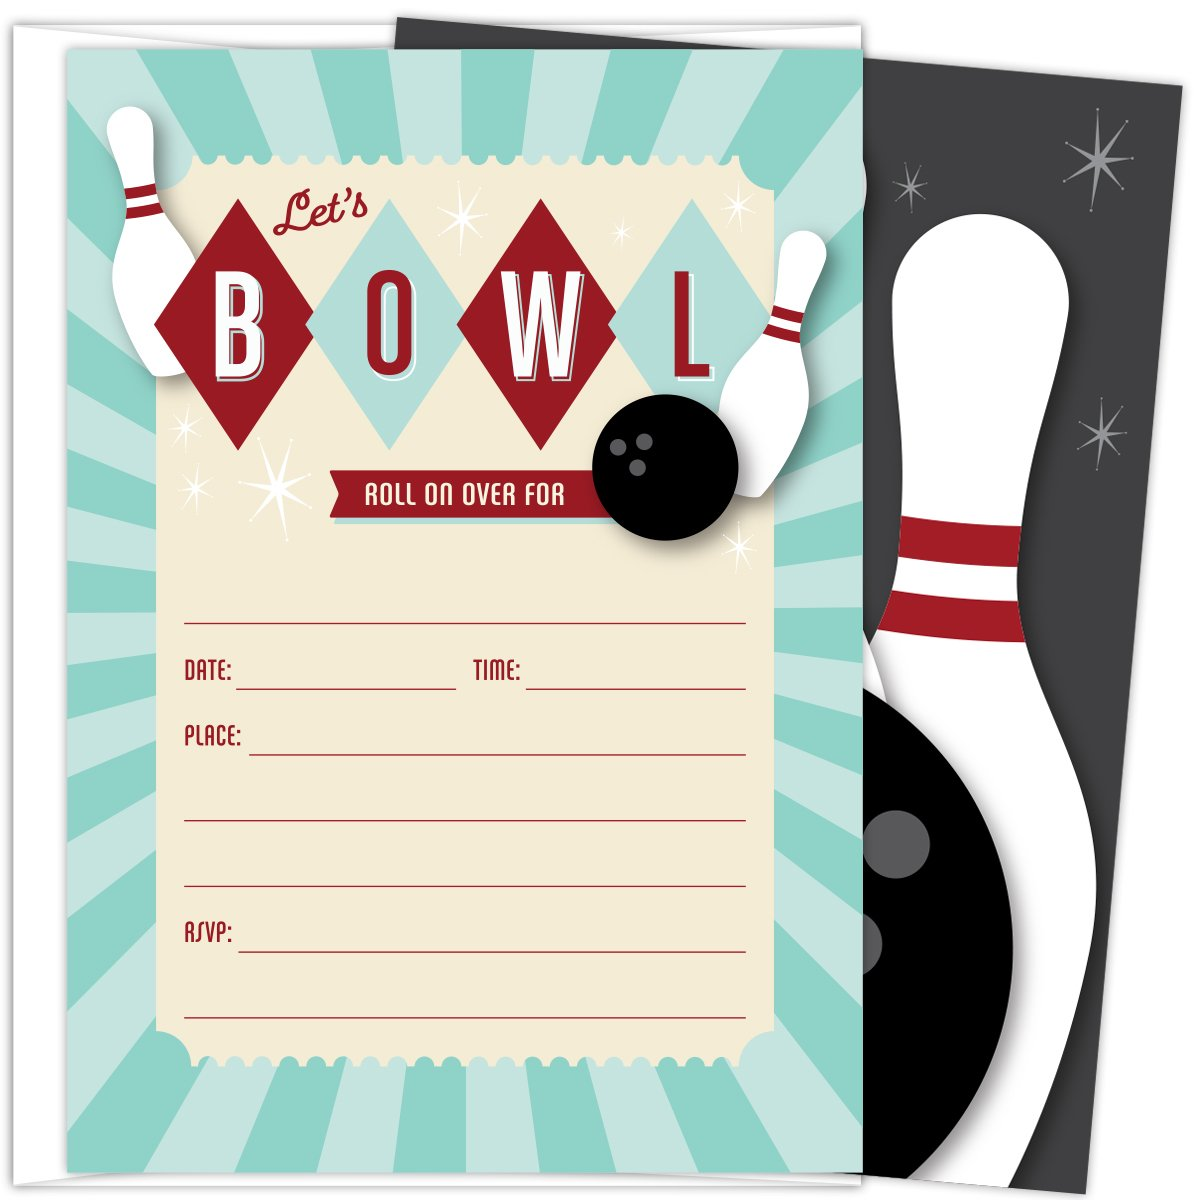 Bowling Party Invitations. Set of 25 Fill In Style Bowling Themed Cards and Envelopes for Kids Birthday Parties, Baby Showers and Sprinkles, Bowling Parties, or Any Occasions.